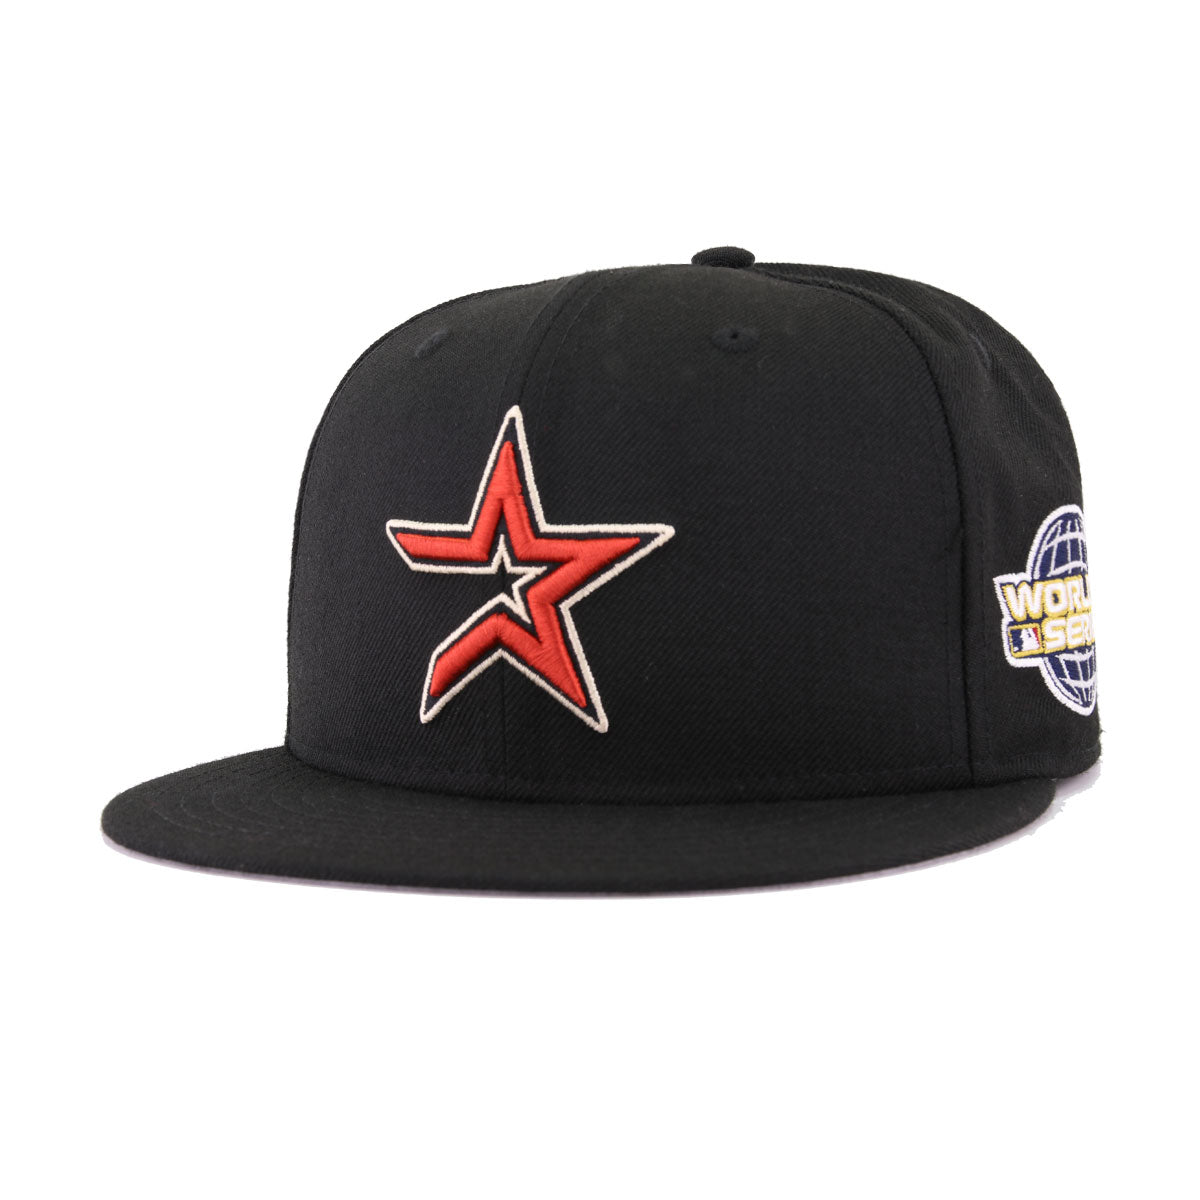 4d564d1d2e2 Houston Astros Cooperstown Black Terra Cotta New Era 2005 World Series  59Fifty Fitted